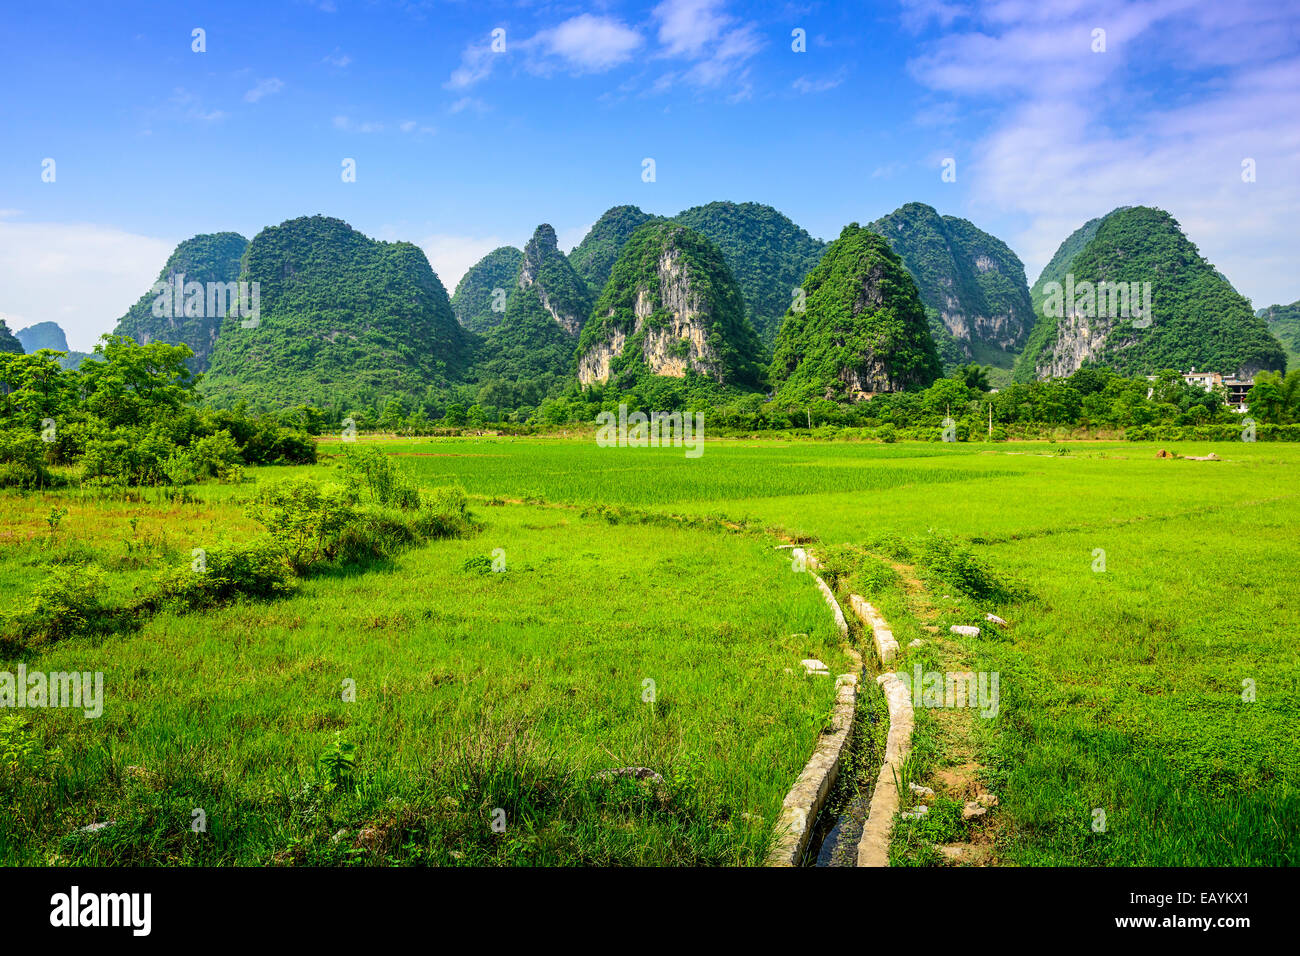 Karst Mountain landscape in rural Guilin, Guangxi, China. - Stock Image